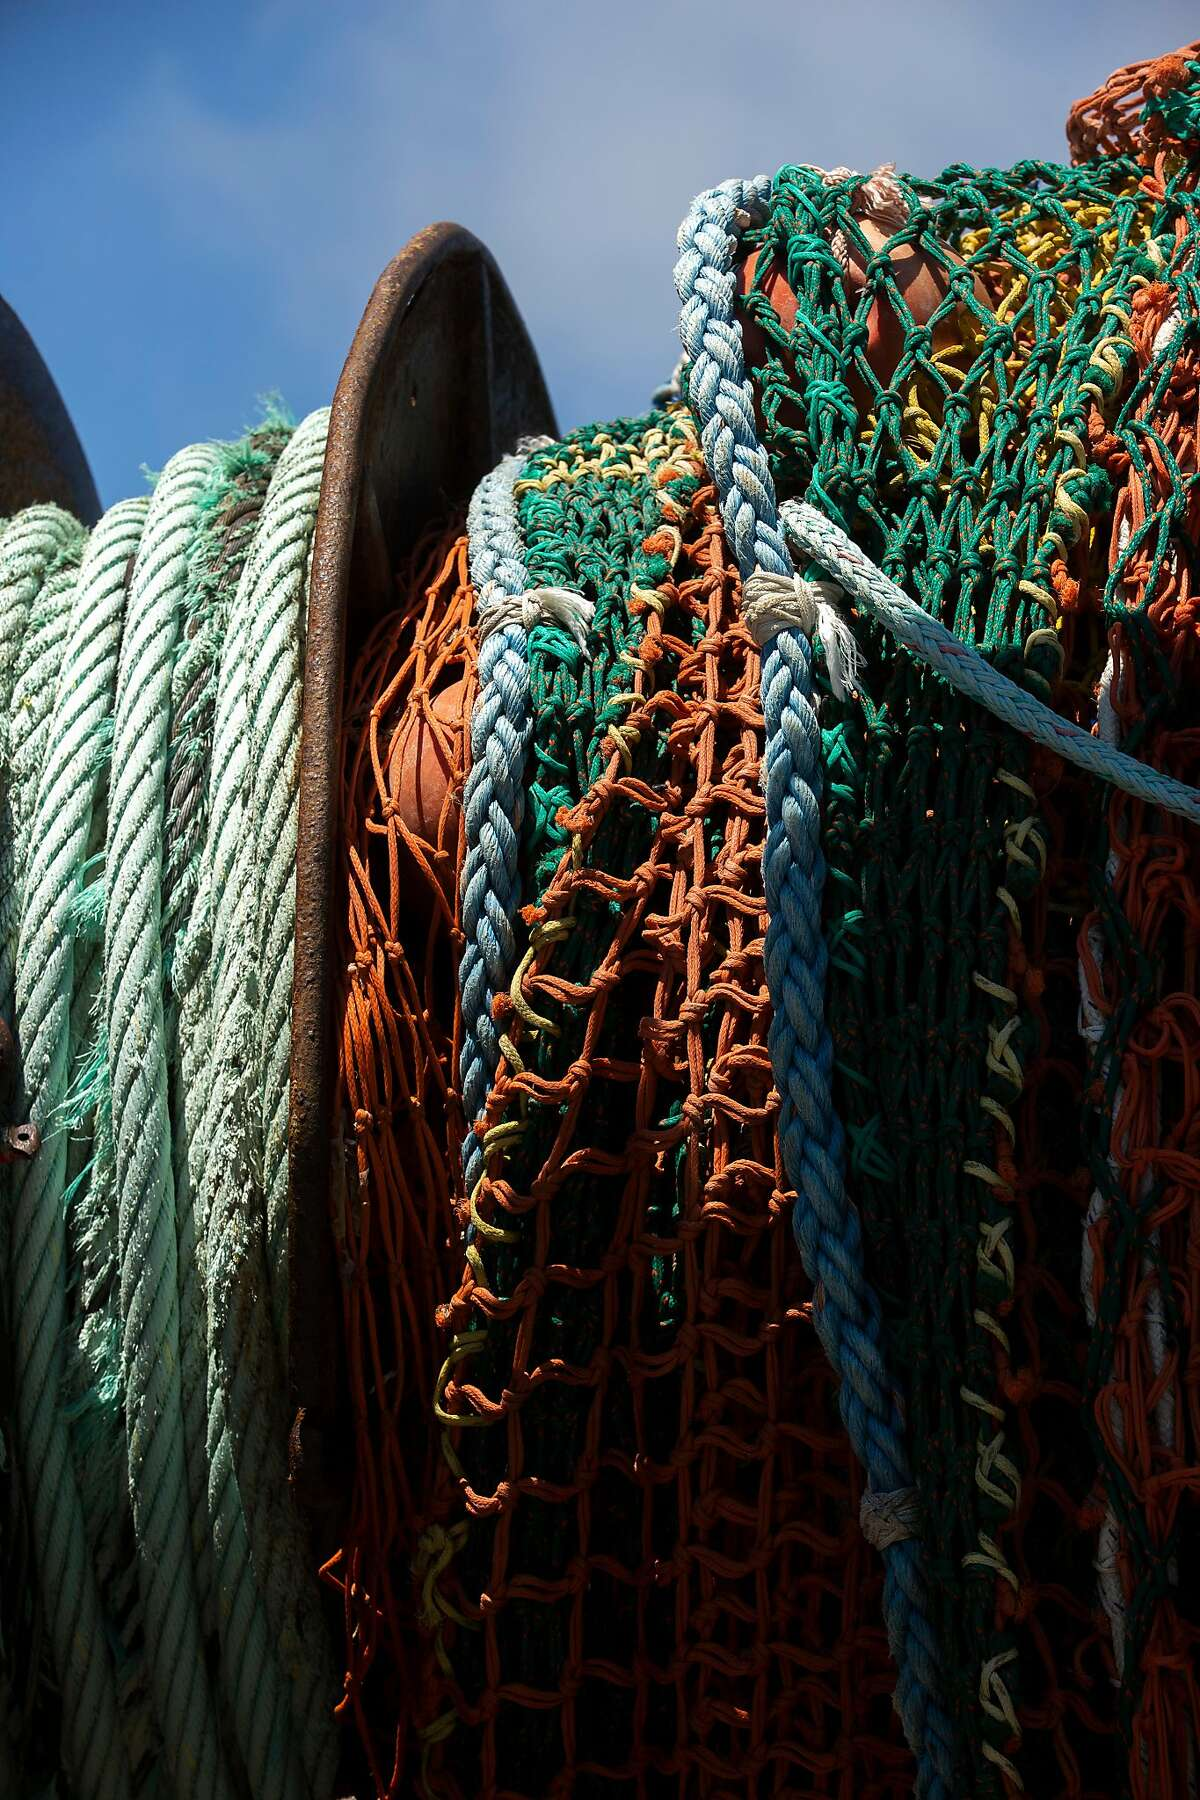 The Pioneer fishing boat�s trawl net on Friday, July 17, 2020, in San Francisco, Calif.